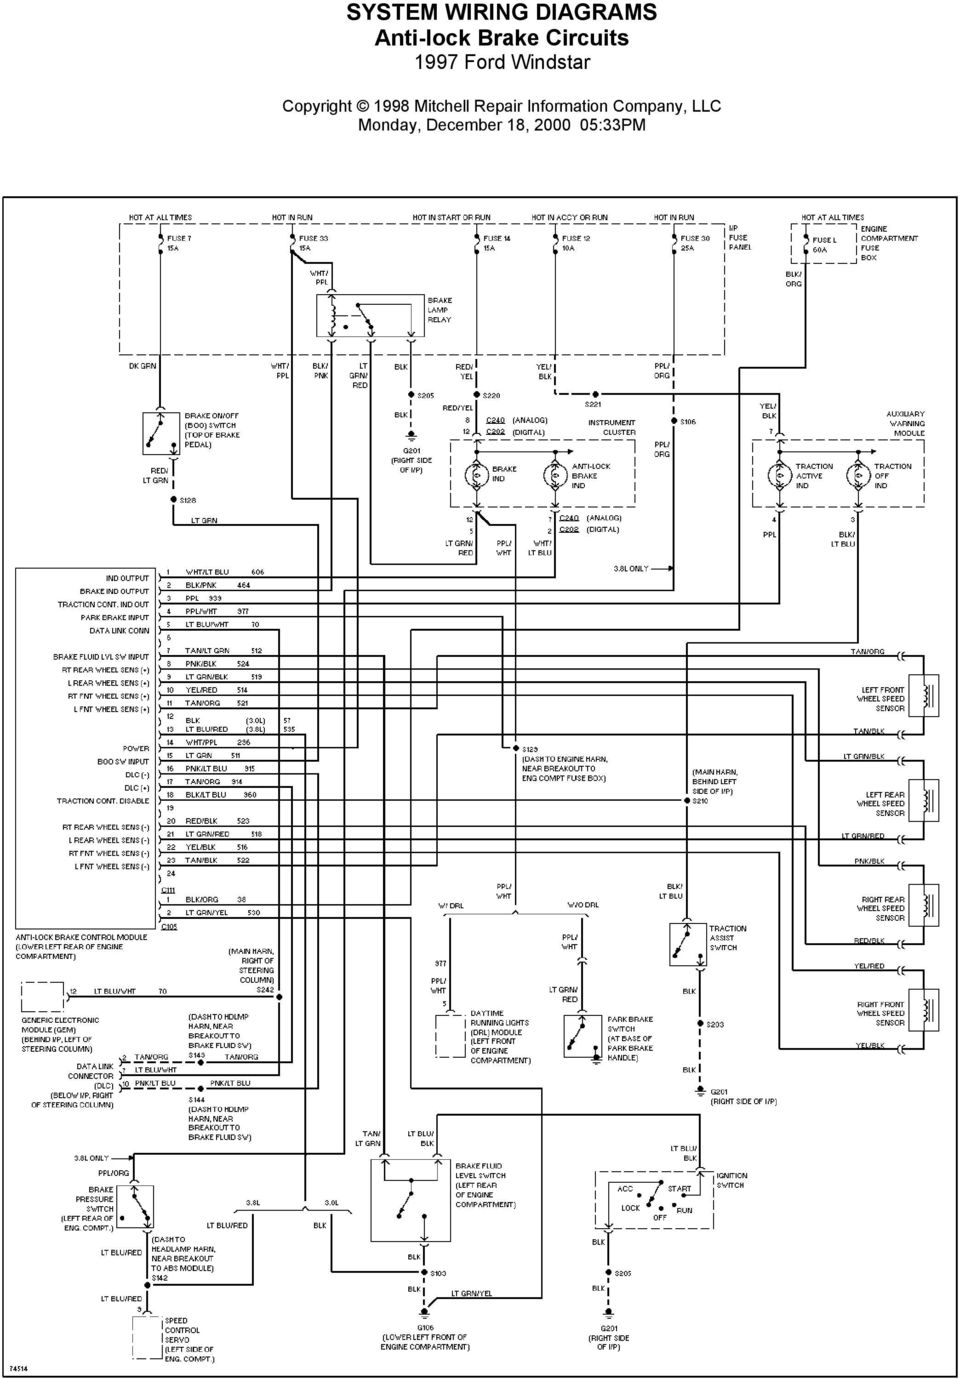 2000 Ford Windstar Wiring Diagrams manual